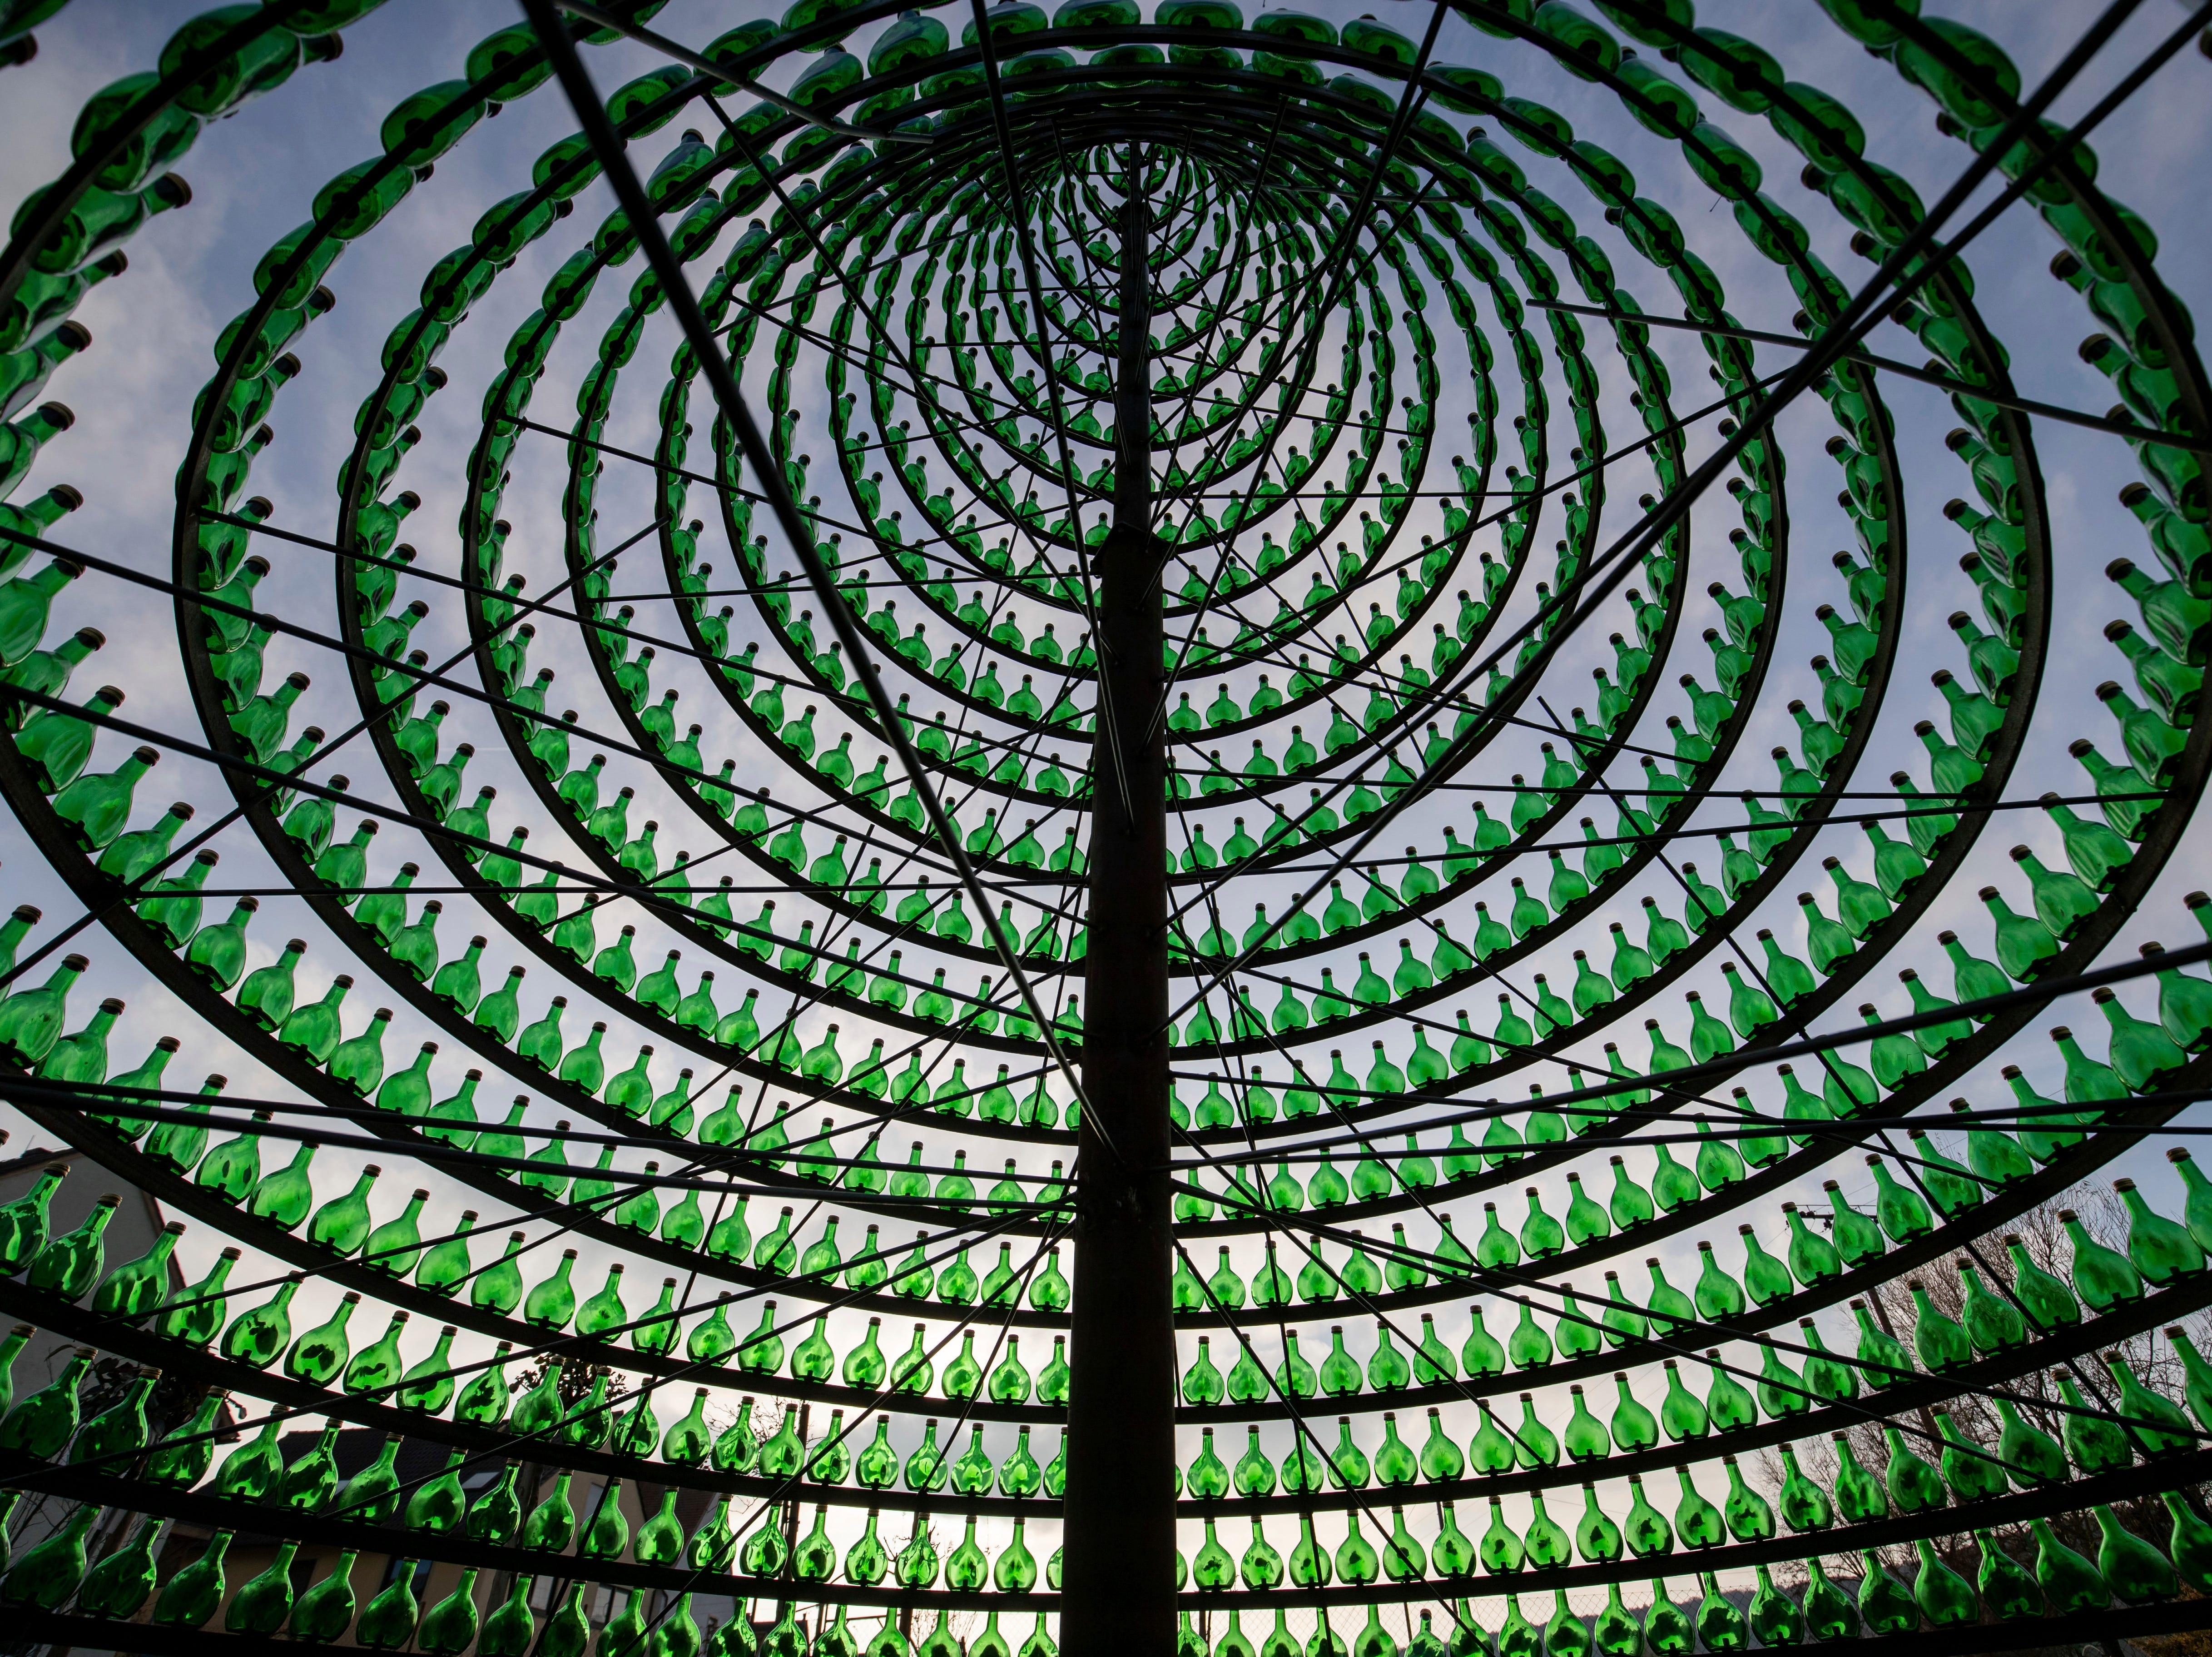 The Nov. 28, 2018, photo shows the inside of a Christmas tree made from 1099 Bocksbeutel wine bottles in Nordheim am Main, southern Germany. The bottles with the distinctive round body are typical for the Frankonian wine region.